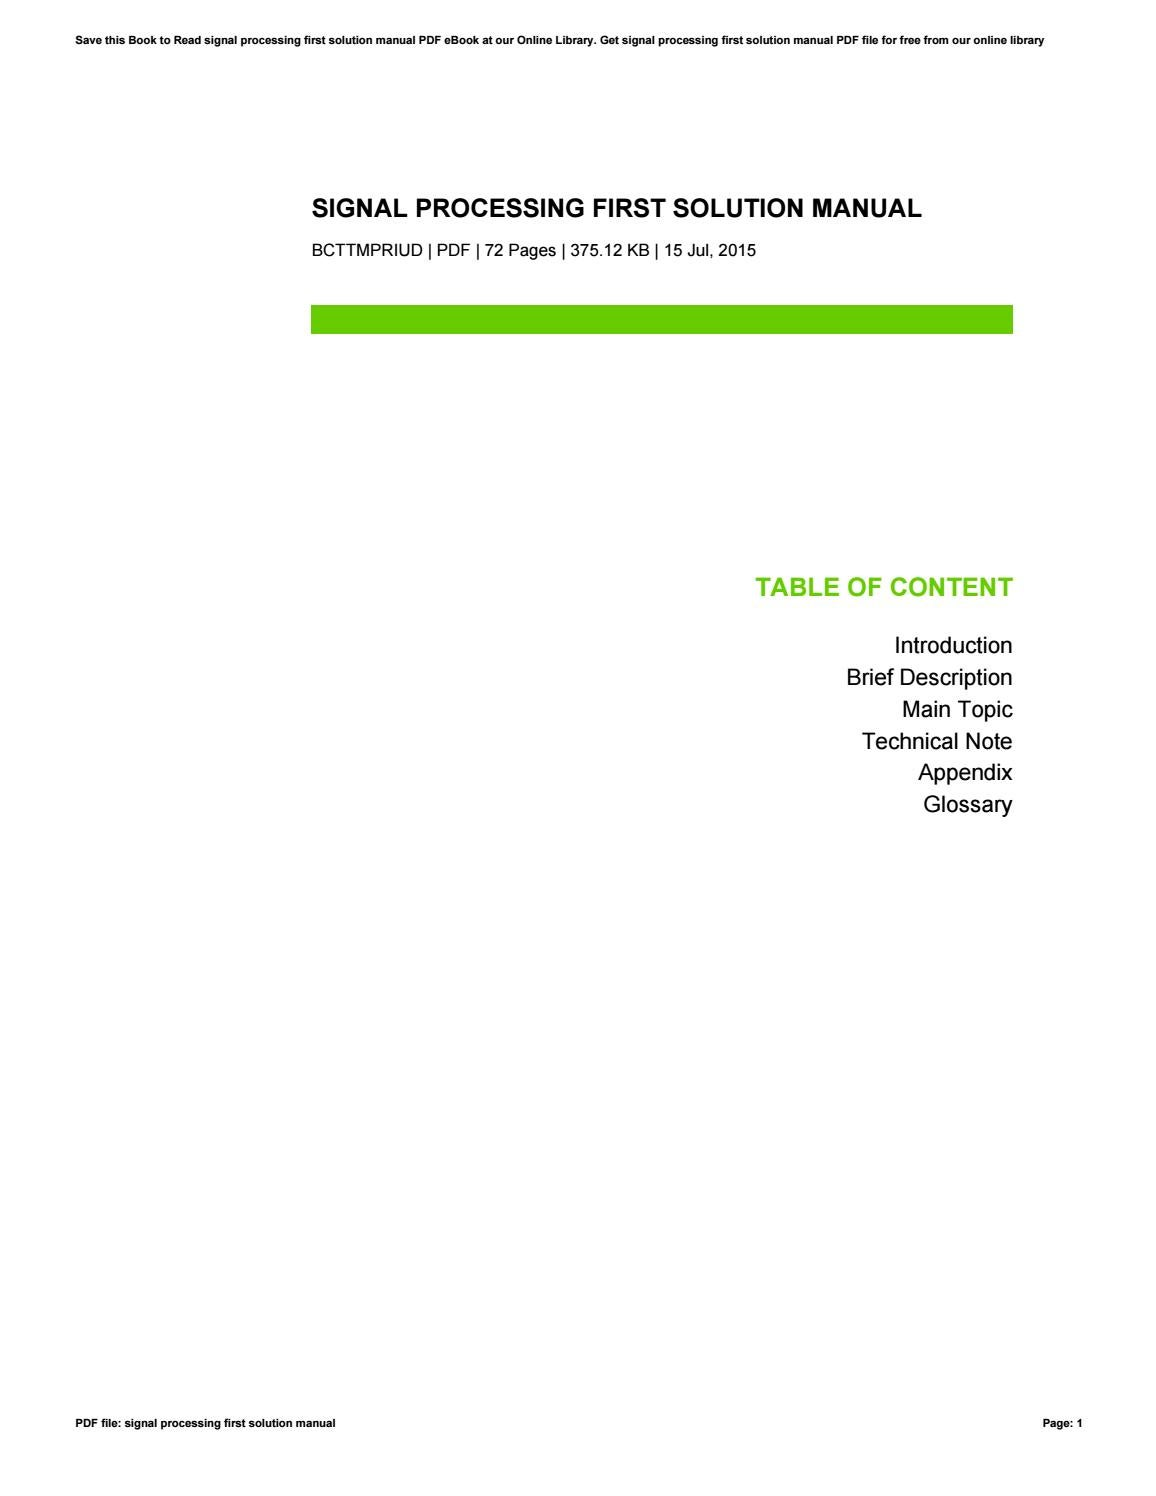 Signal Processing First Ebook